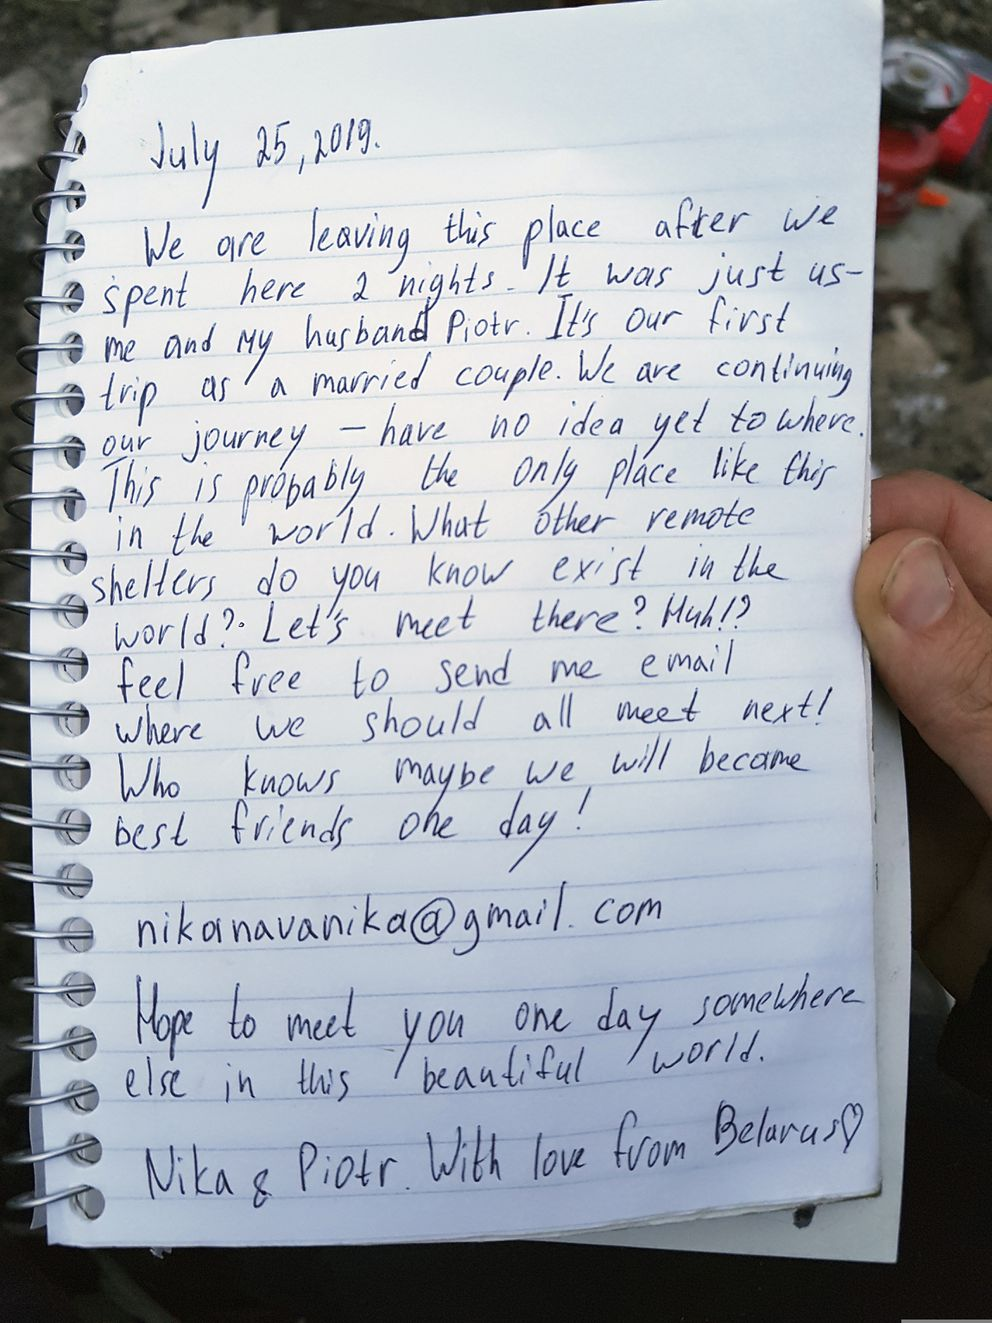 This undated photo provided by Piotr Markielau shows a handwritten note he and his wife Veranika Nikonova left in an abandoned bus in the Alaska wilderness before she died on July 25, 2019, following her struggle to cross the Teklanika River. Markielau said he frantically tried but failed to save his wife as she struggled to cross the river near a bus in the Alaska wilderness made famous by the movie 'Into the Wild. ' (Piotr Markielau via AP)